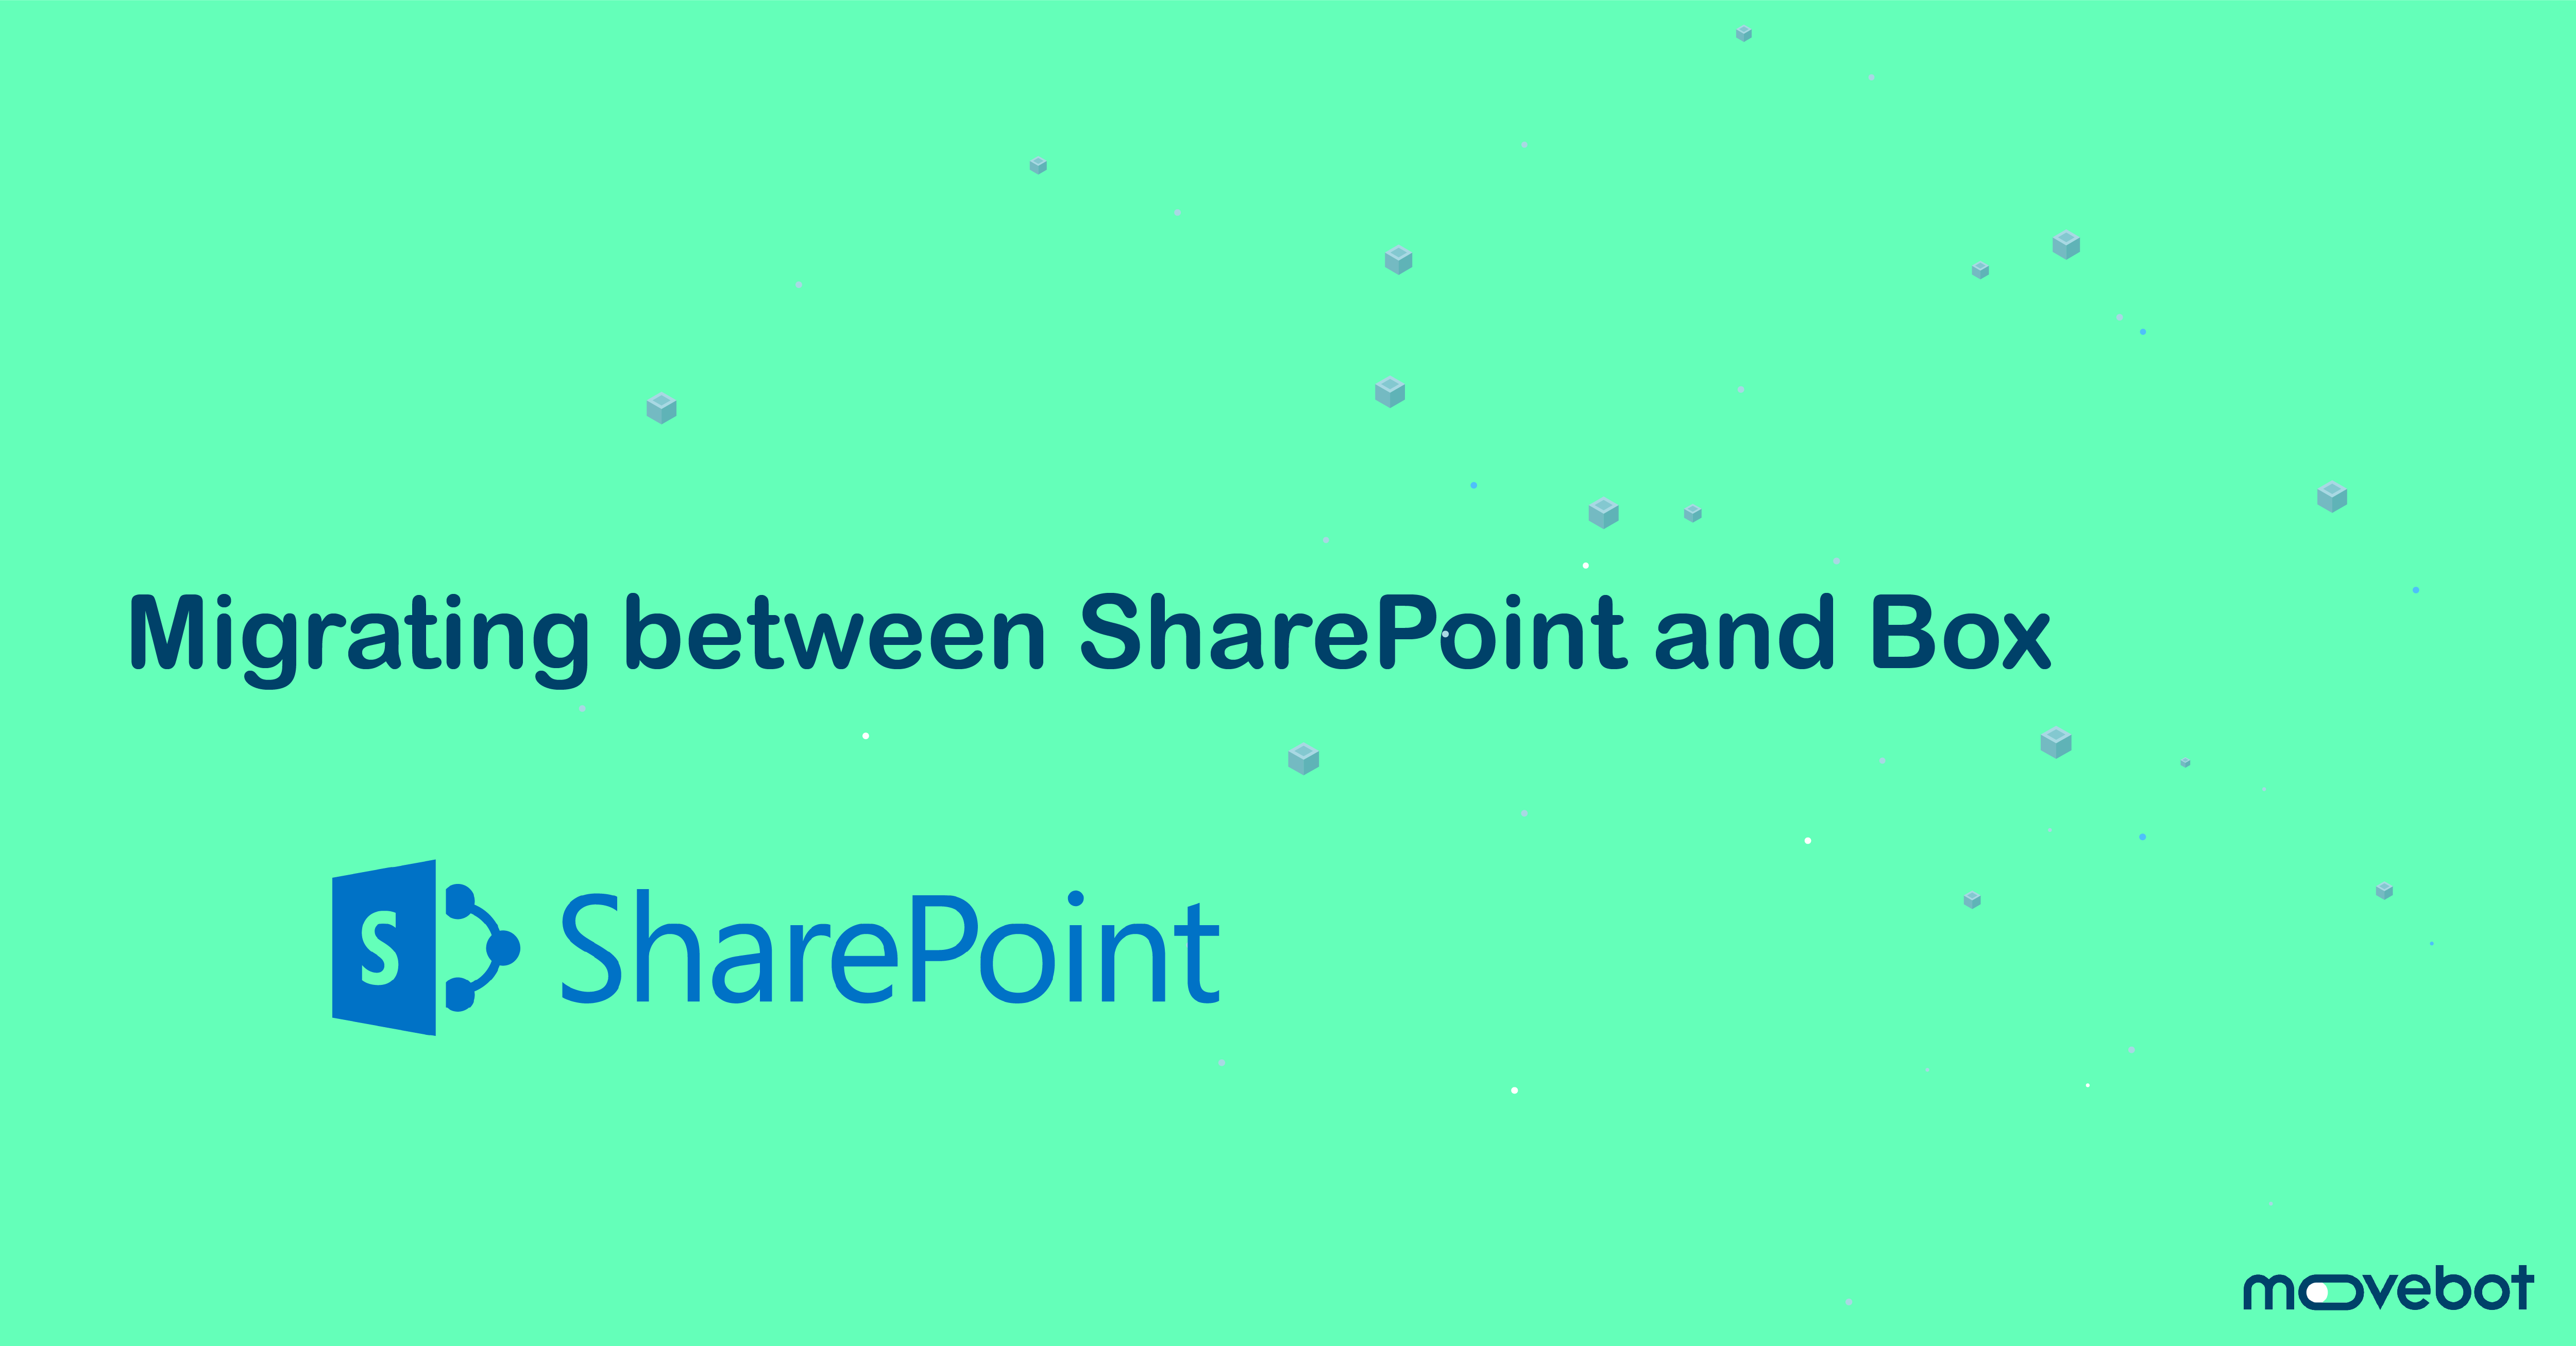 Migrate between SharePoint and Box